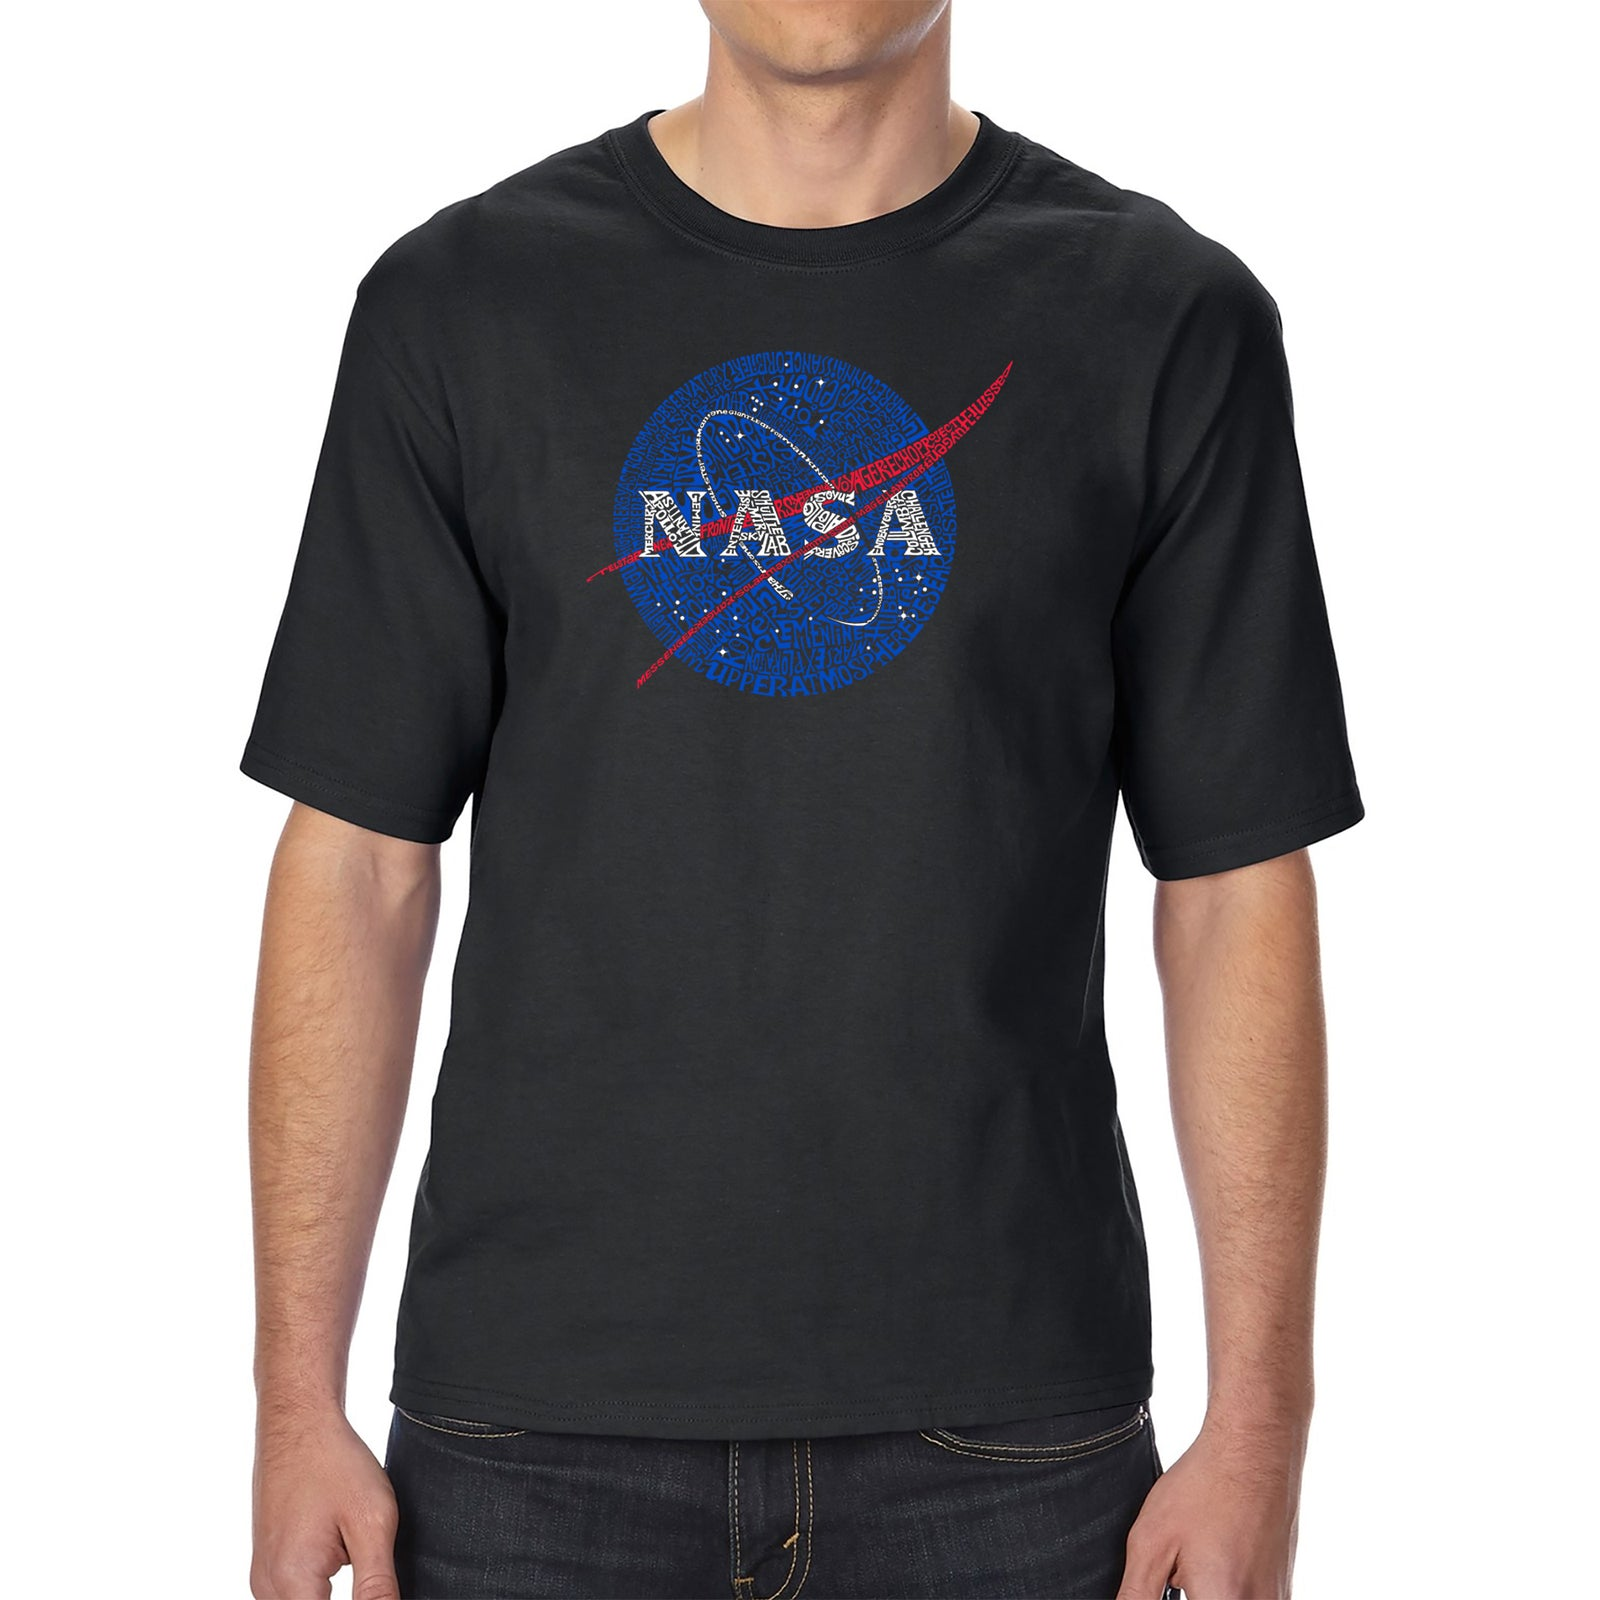 Men's Tall and Long Word Art T-shirt - NASA's Most Notable Missions